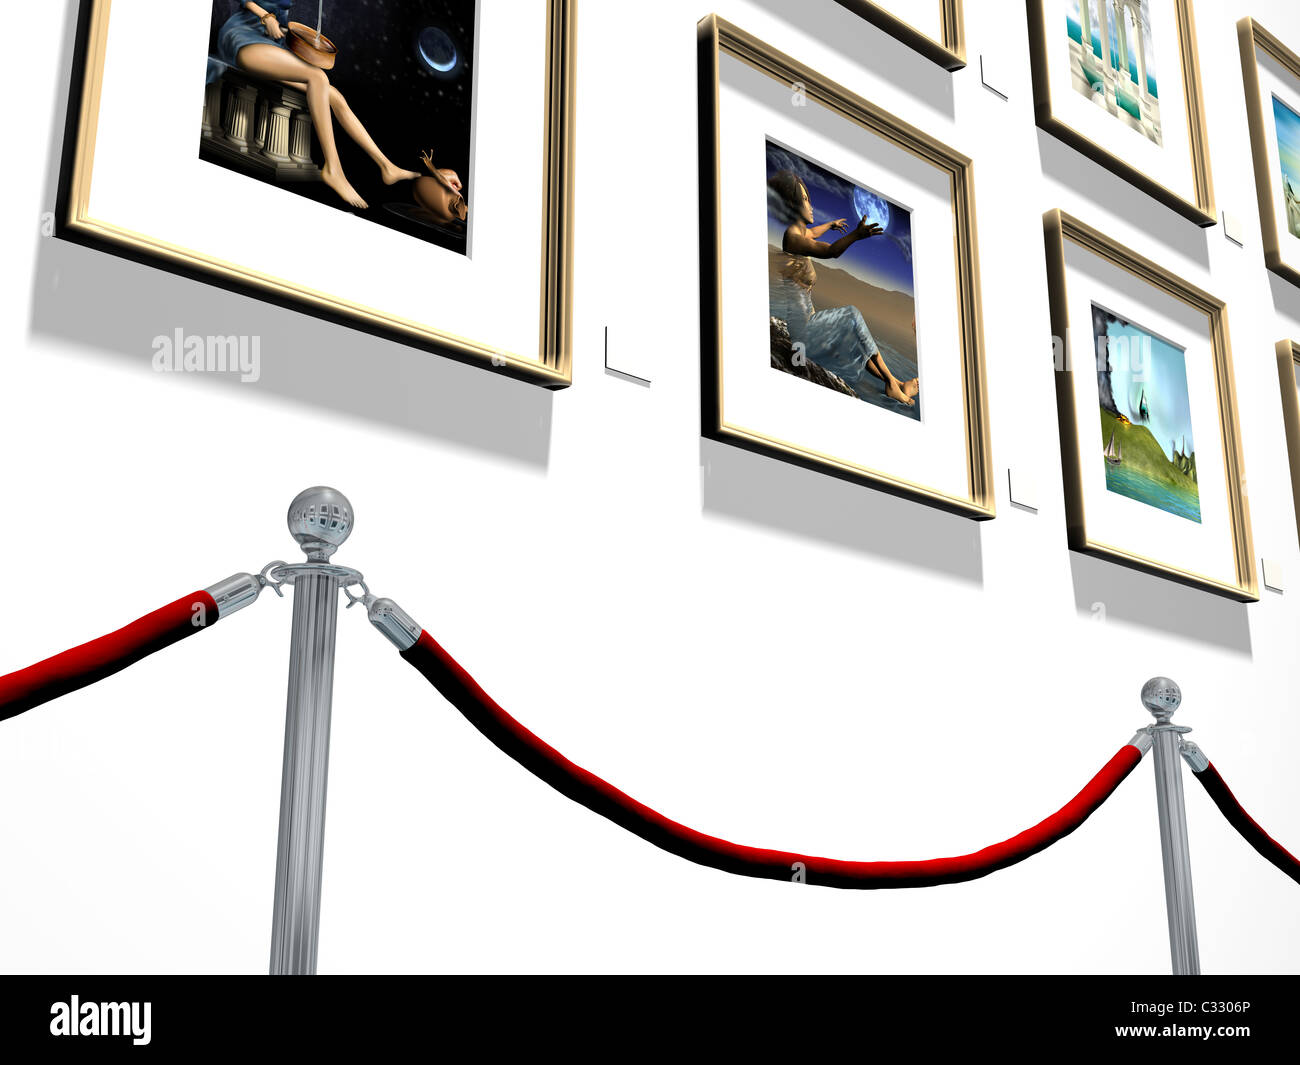 Illustration de photos accroché sur un mur de la galerie Photo Stock